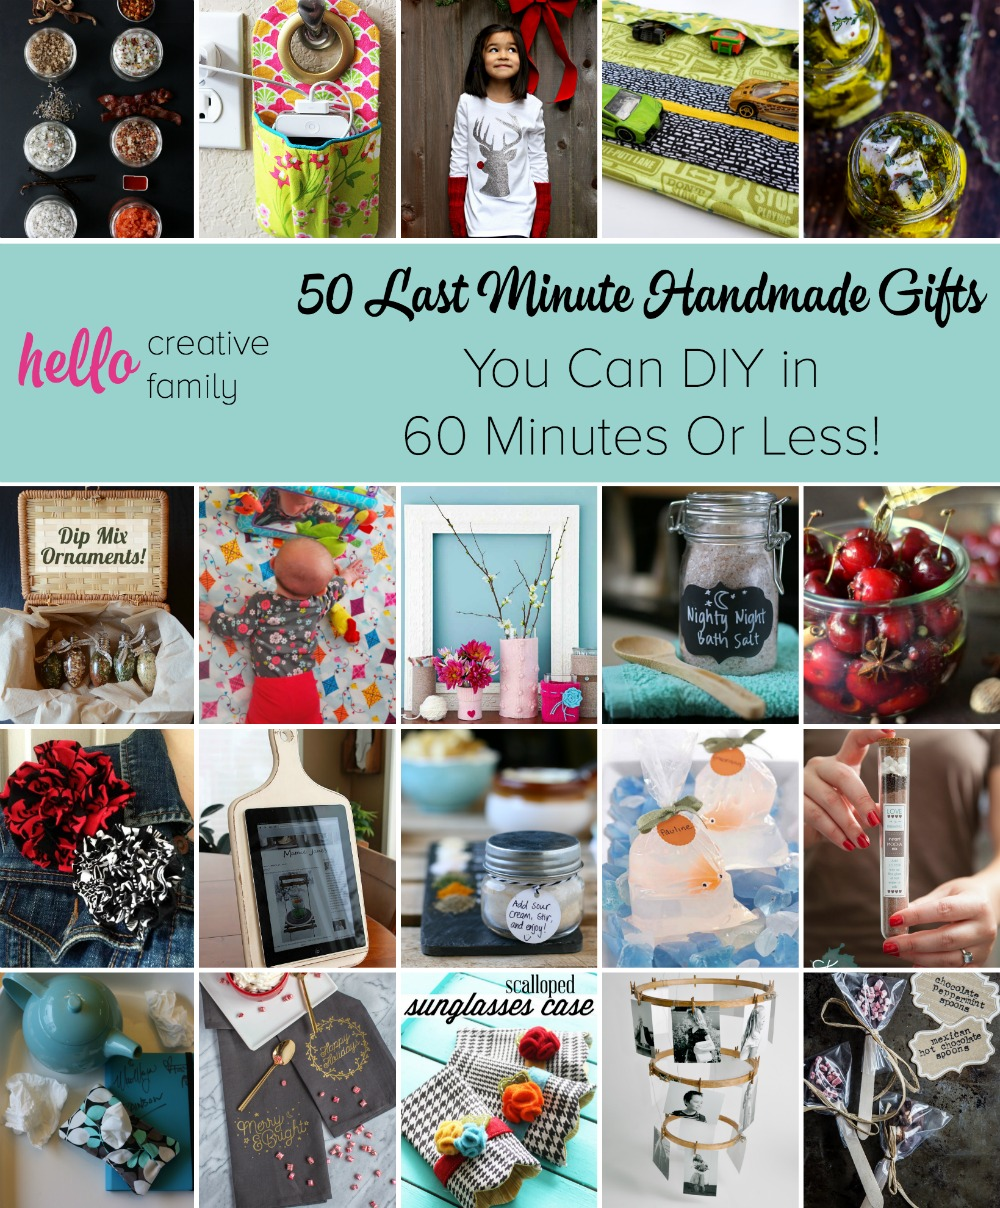 Stuck for a last minute gift? Here are 50 Last Minute Handmade Gifts you can